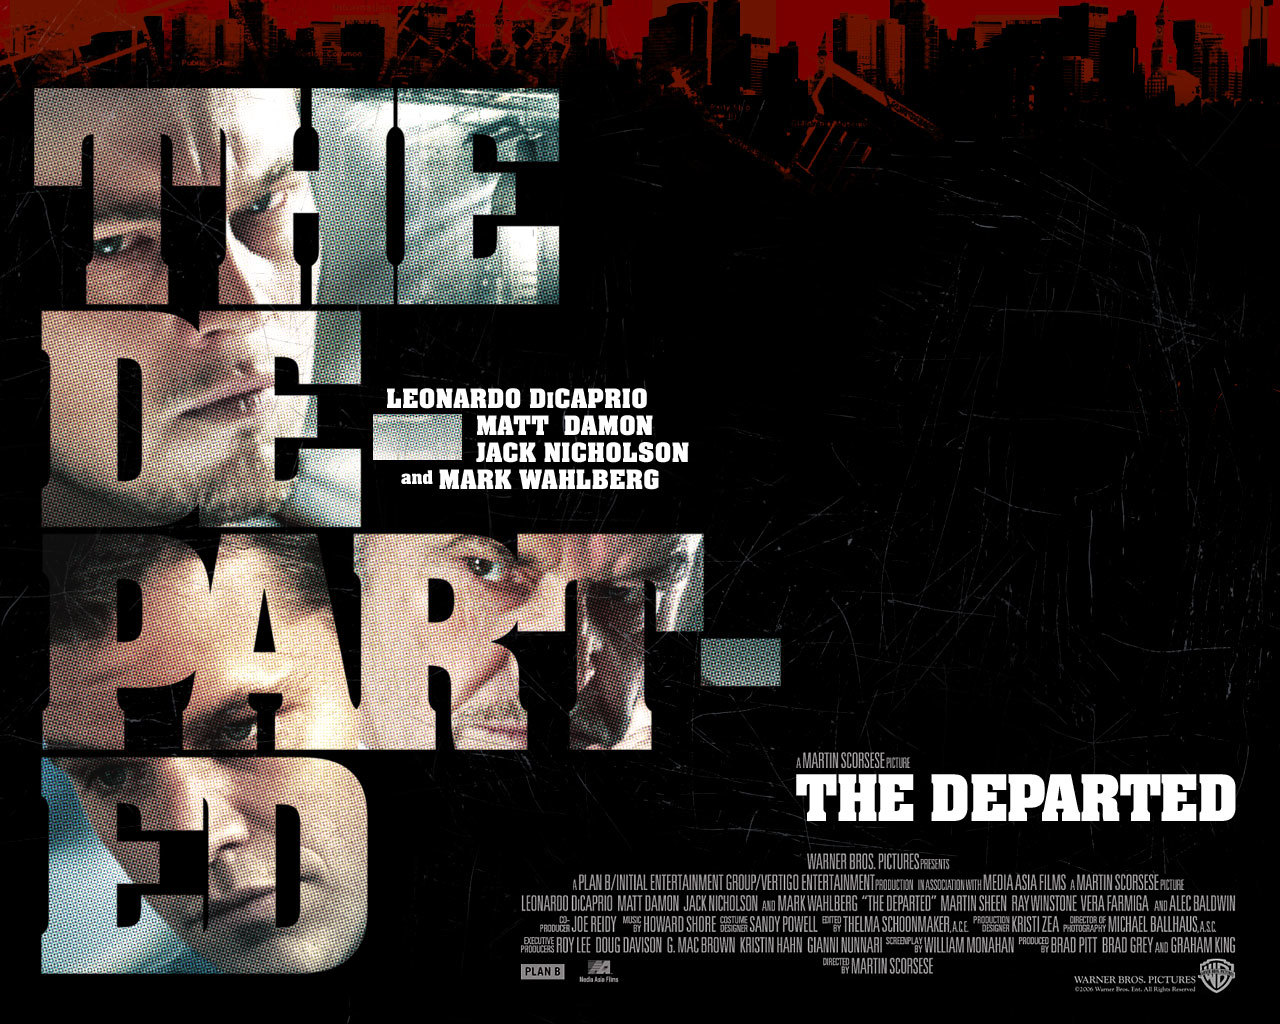 departed Movie poster HD Wallpaper